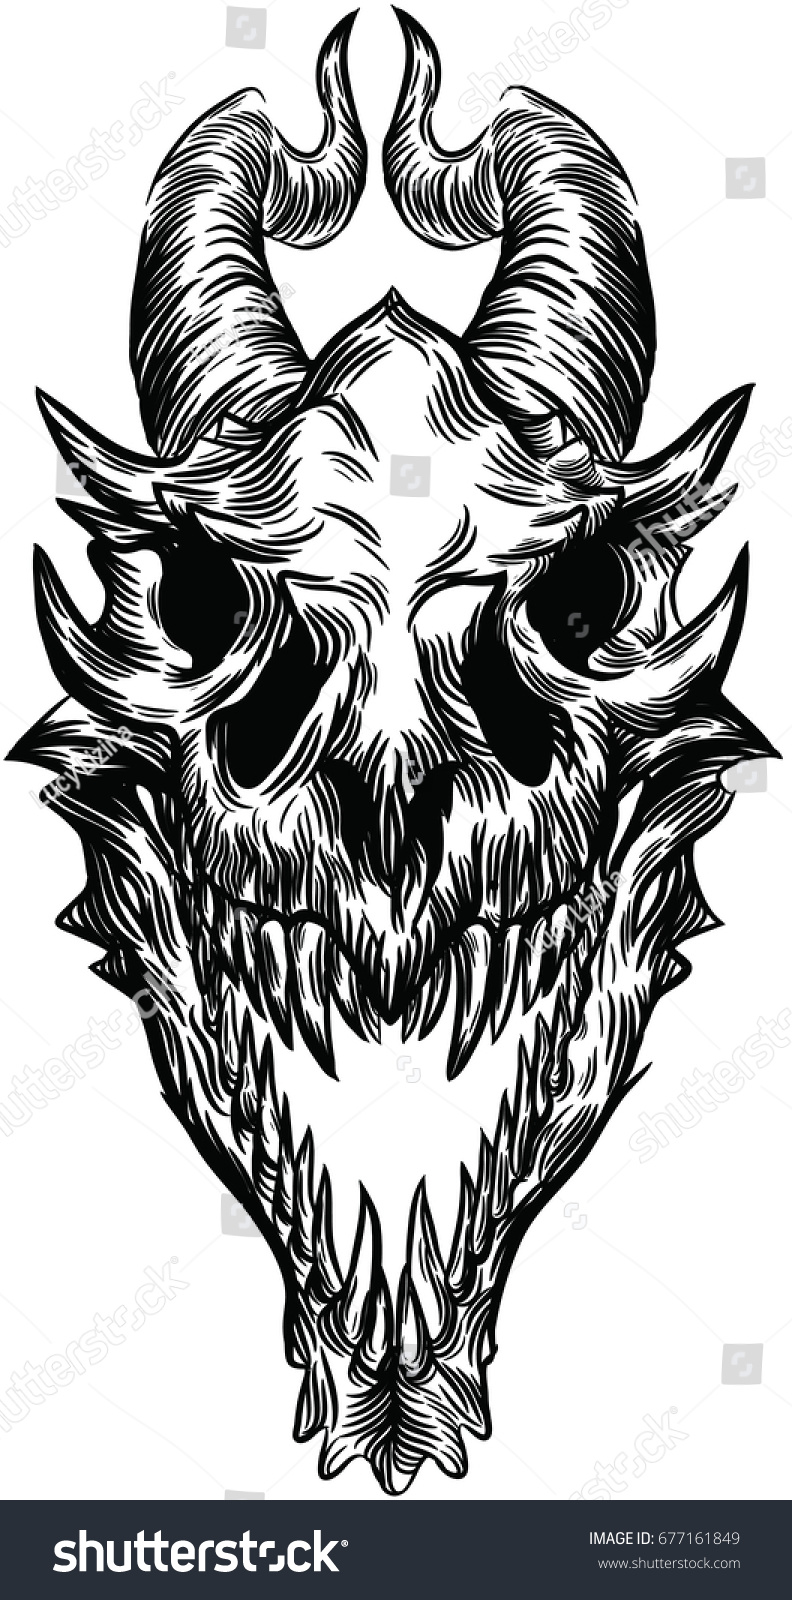 Dragon Skull Stock Vector Royalty Free 677161849 #sculpture #ceramics #dragon #dragon skull #bone time #she lived a good life #yes i gave her a full i've done a pearlcatcher and ridgeback skull so far so there's just snapper and spiral left before. https www shutterstock com image vector dragon skull 677161849